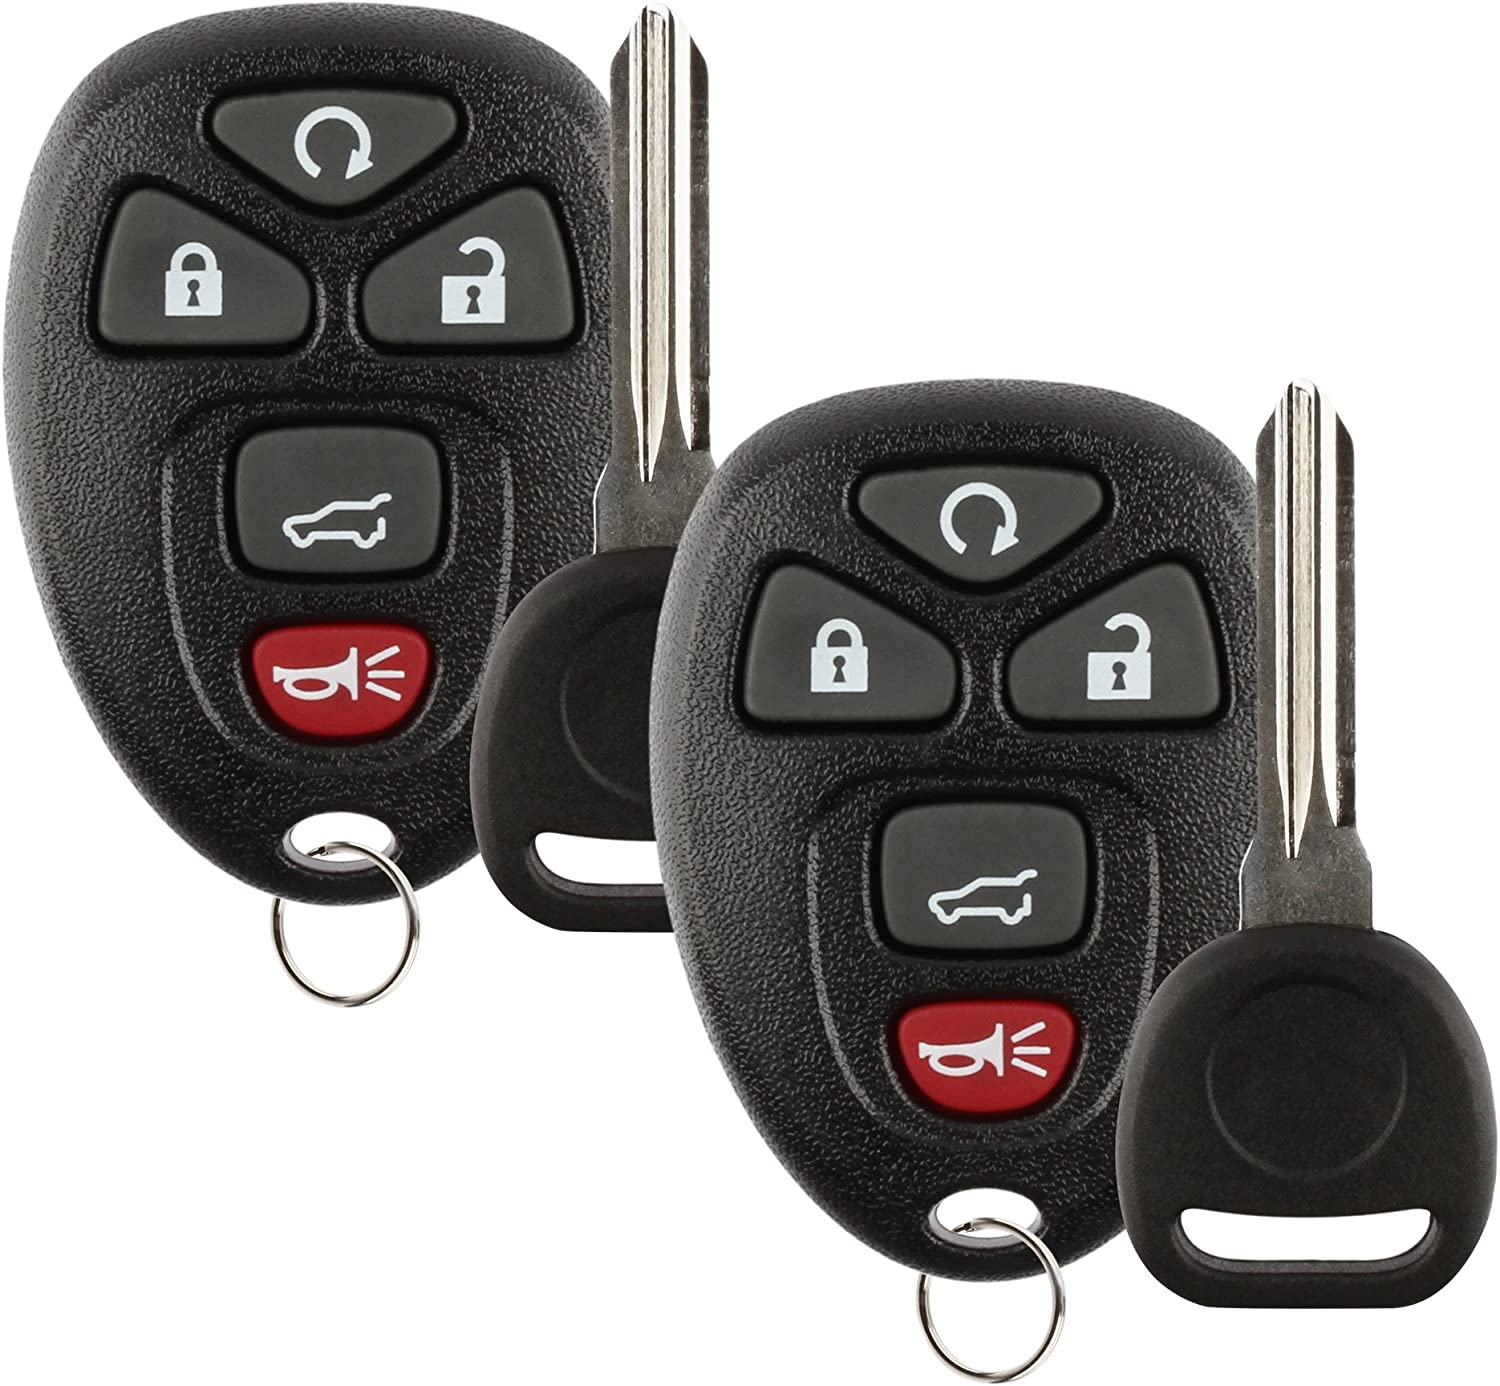 ID 46 25839476 2 Pack Discount Keyless Replacement Key Fob Car Remote and Uncut Transponder Key Compatible with 15913415